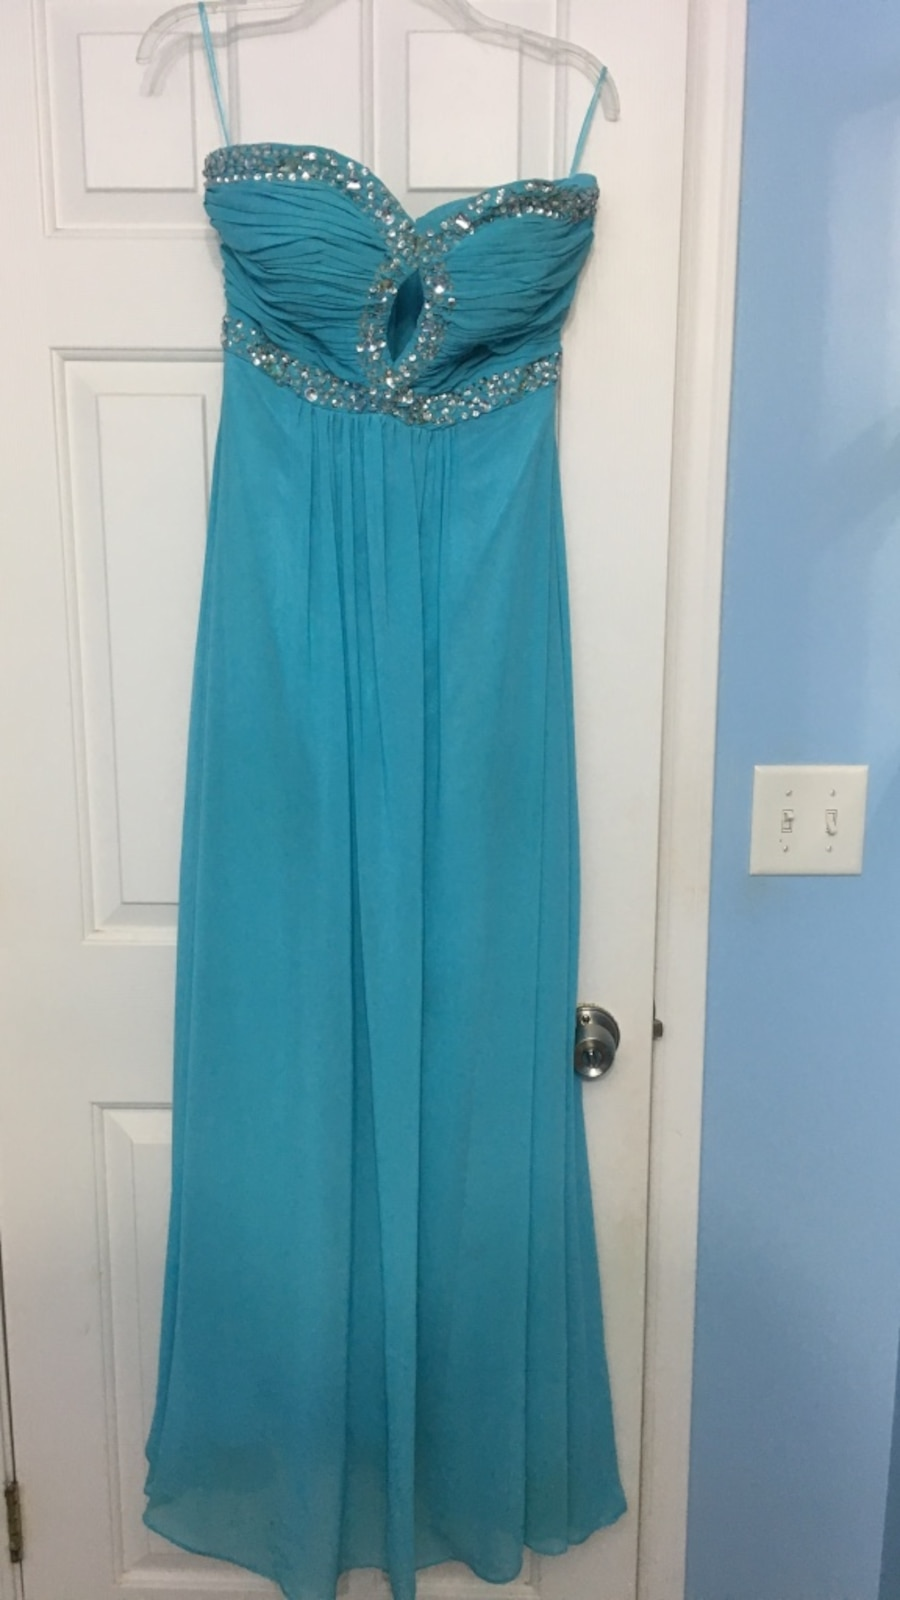 Size 10 . Women's teal tube dress